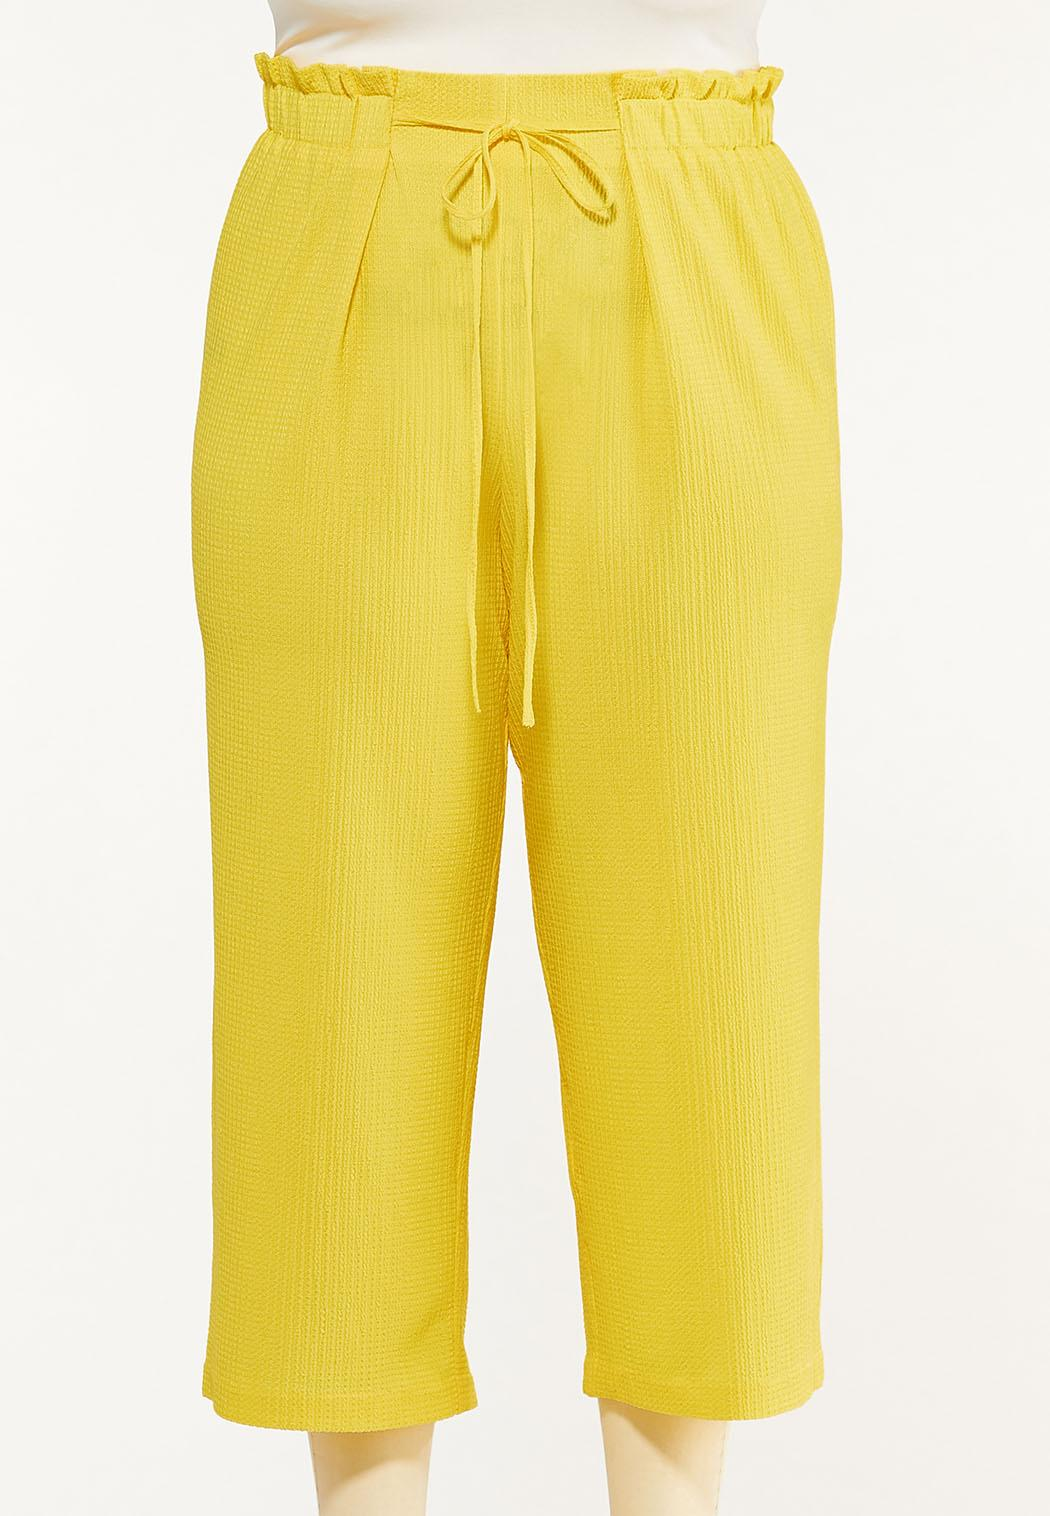 Plus Size Cropped Solid Textured Pants